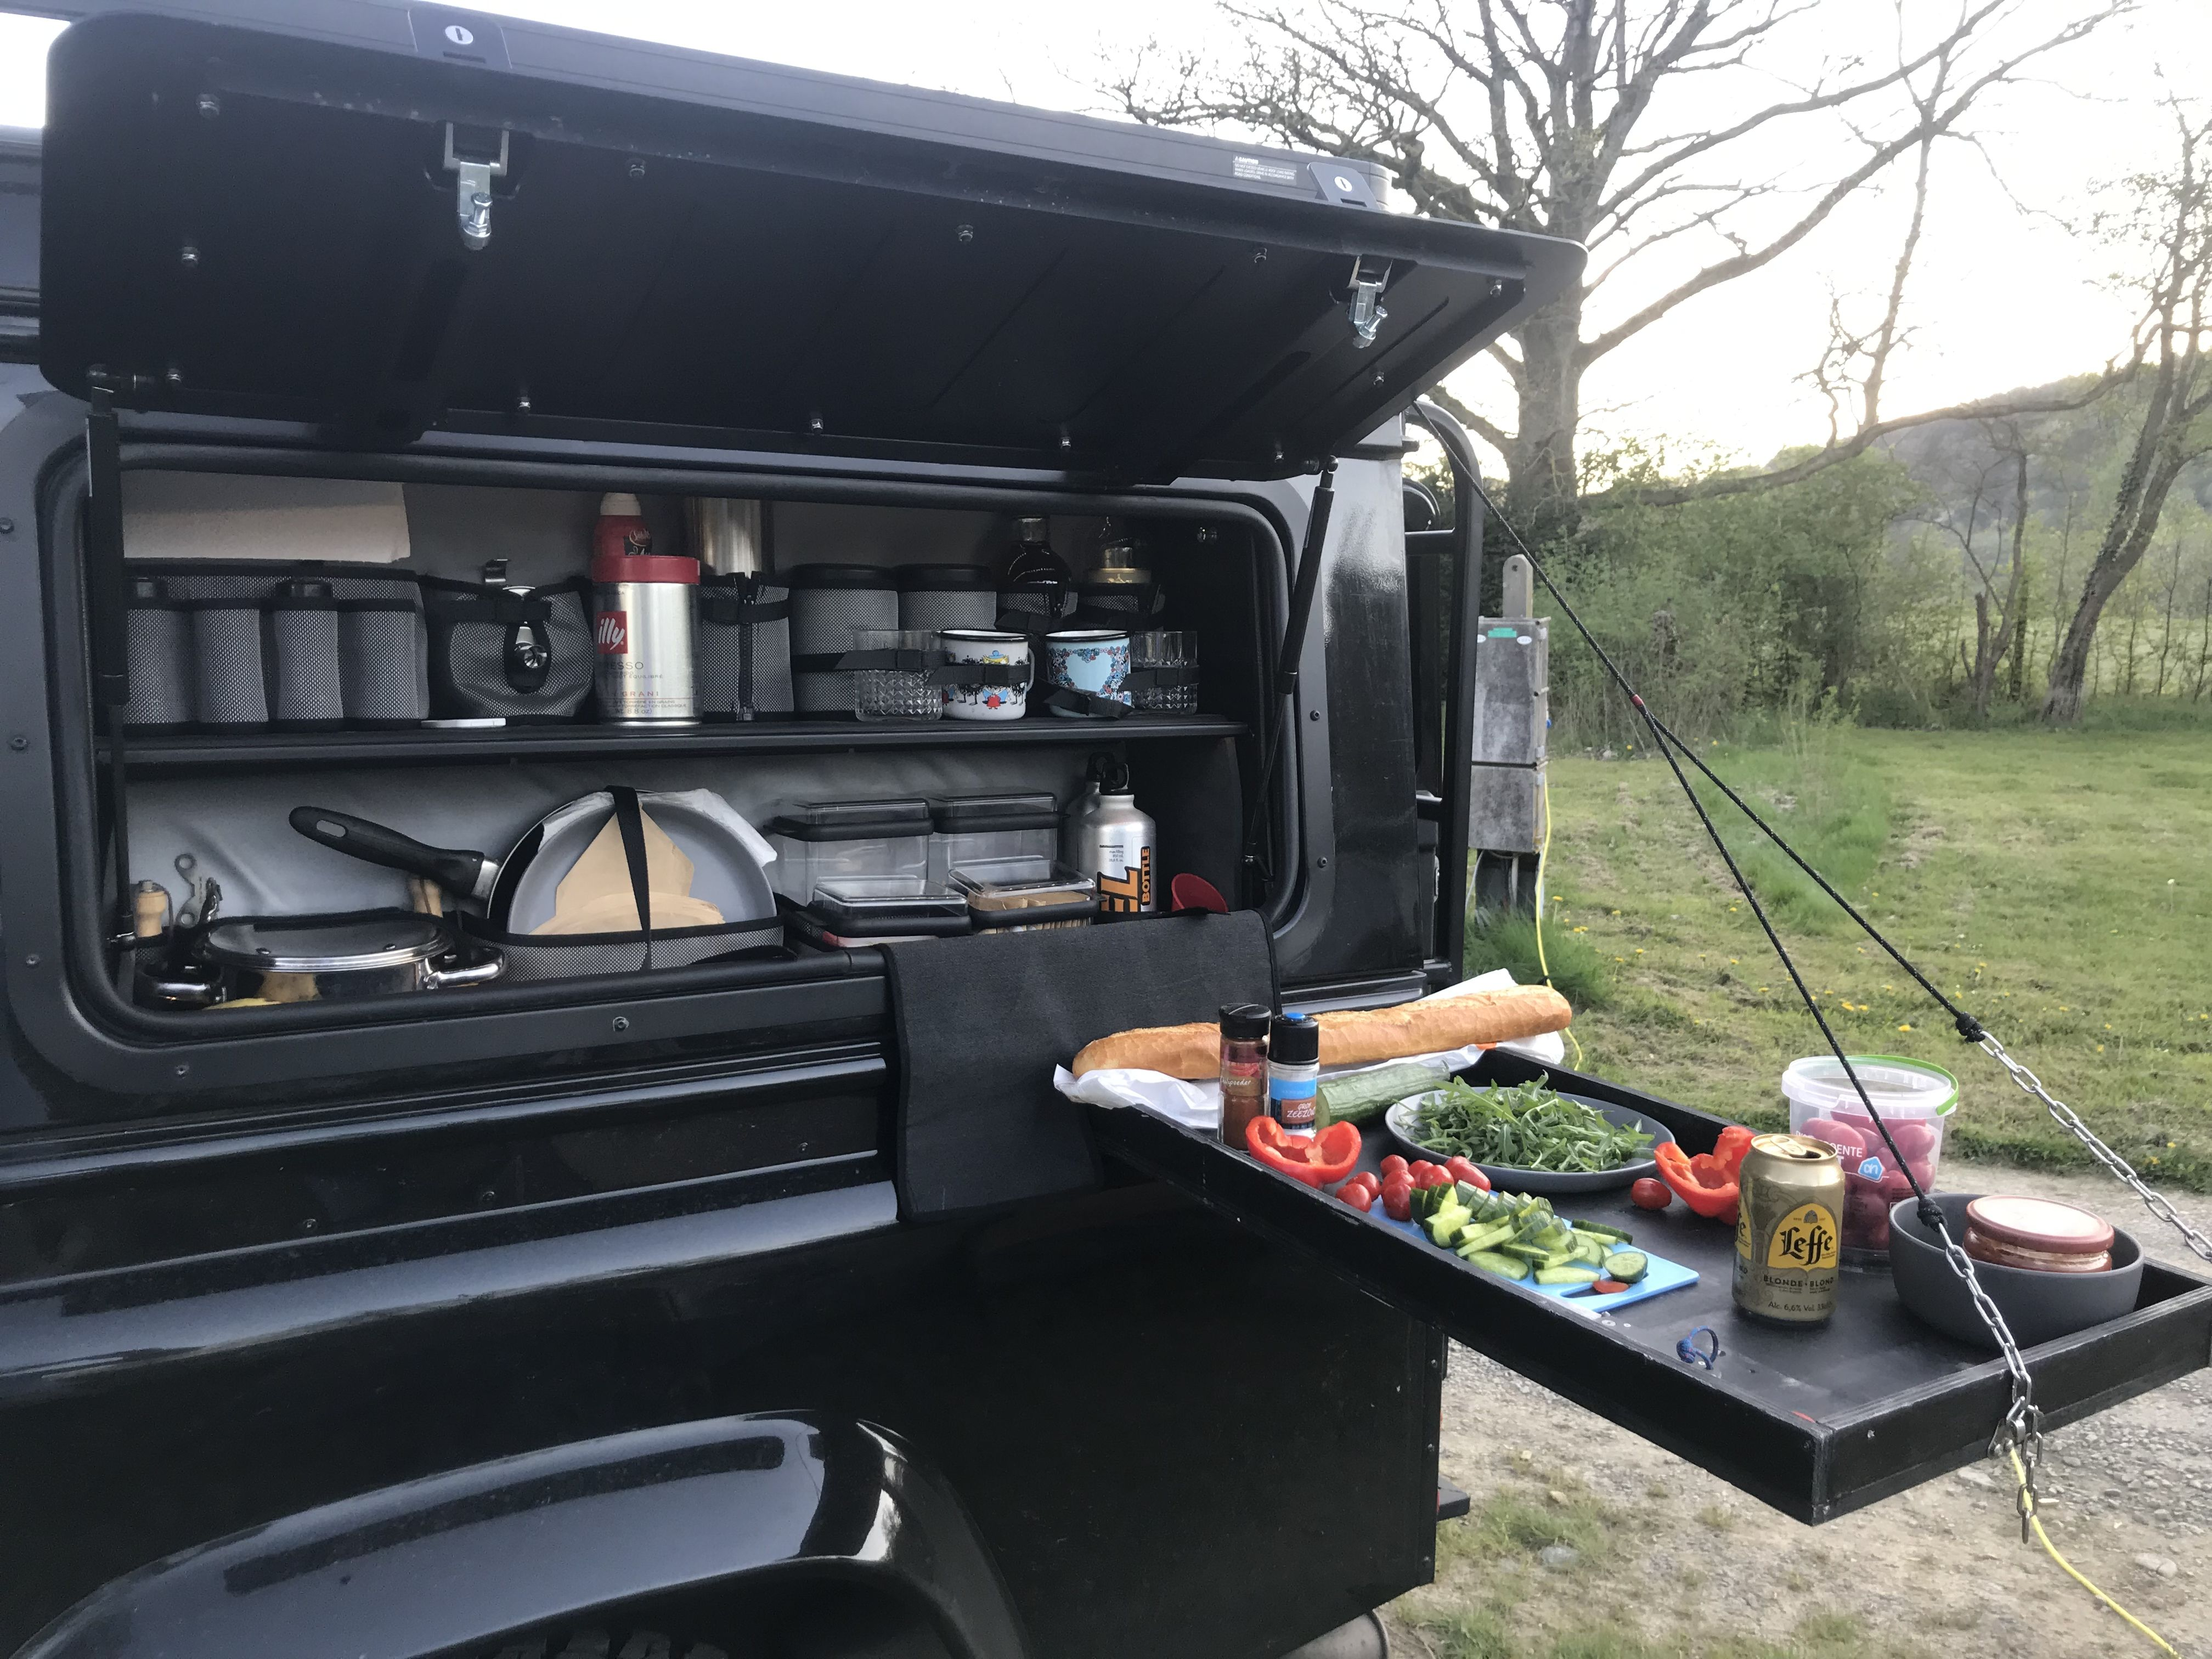 Kitchen Land Rover Defender Camping Land Rover Defender Defender Camper